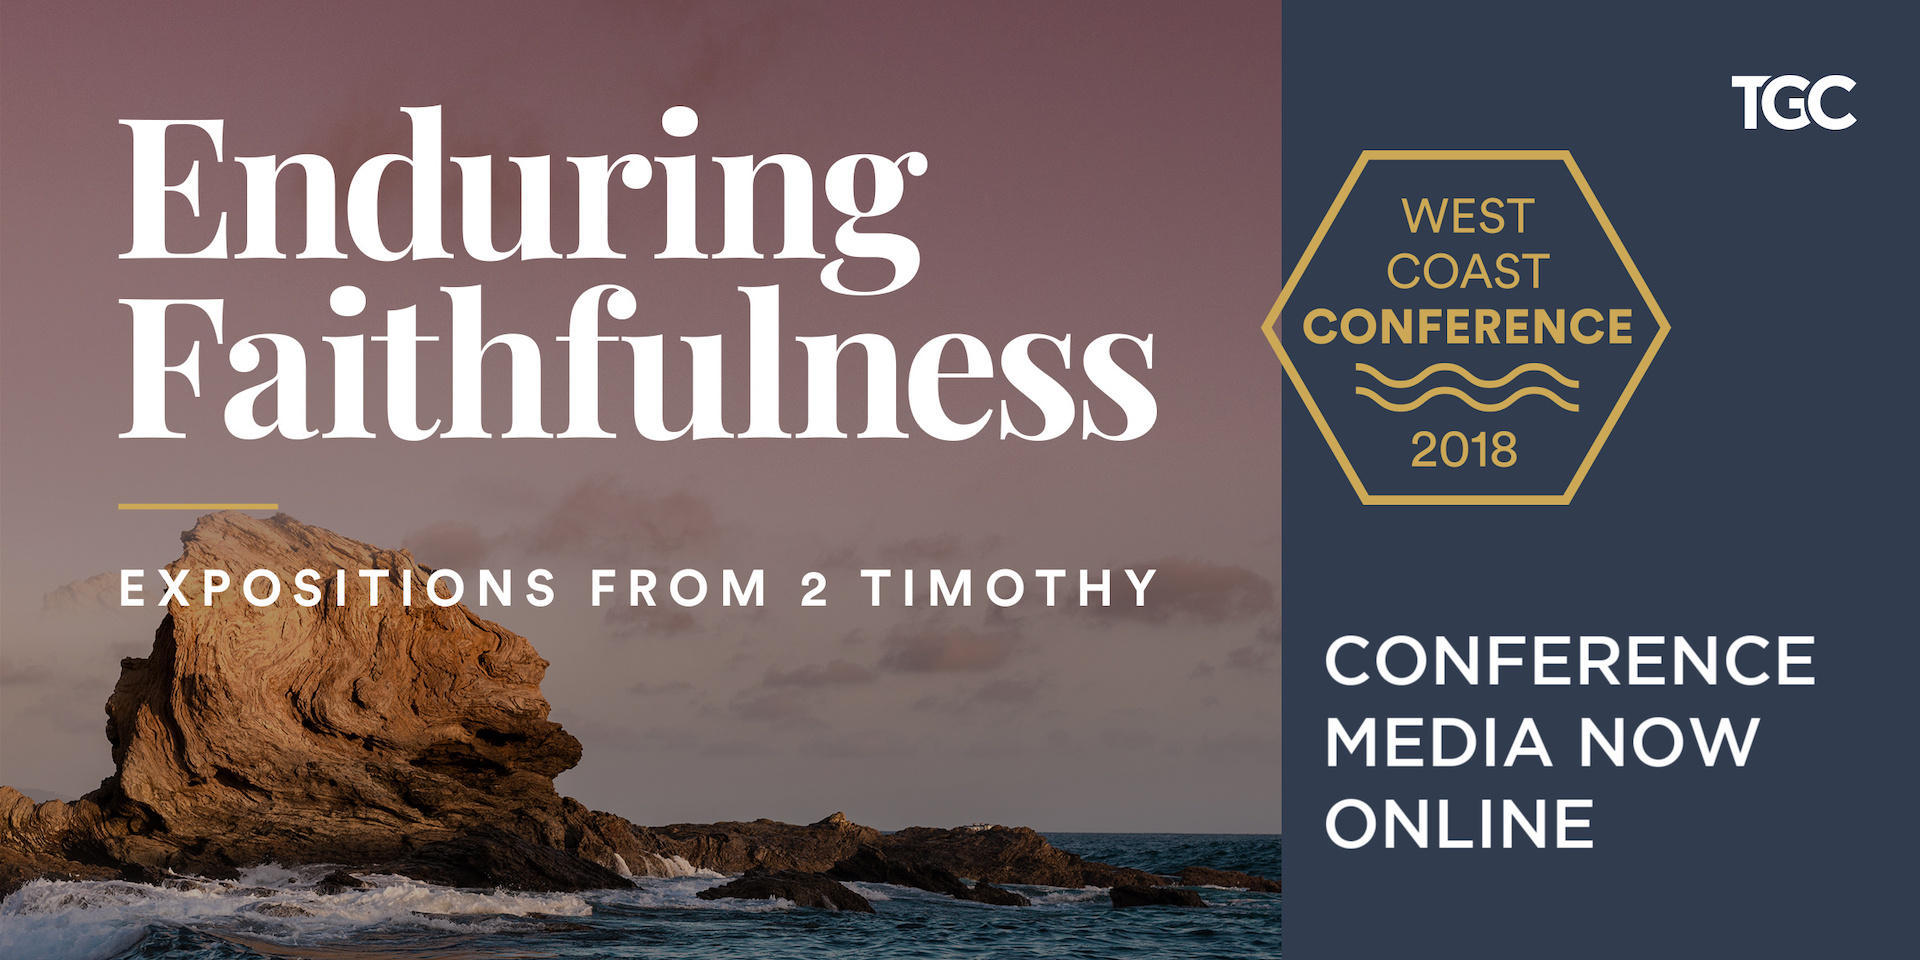 Conference Media from TGC's 2018 West Coast Conference